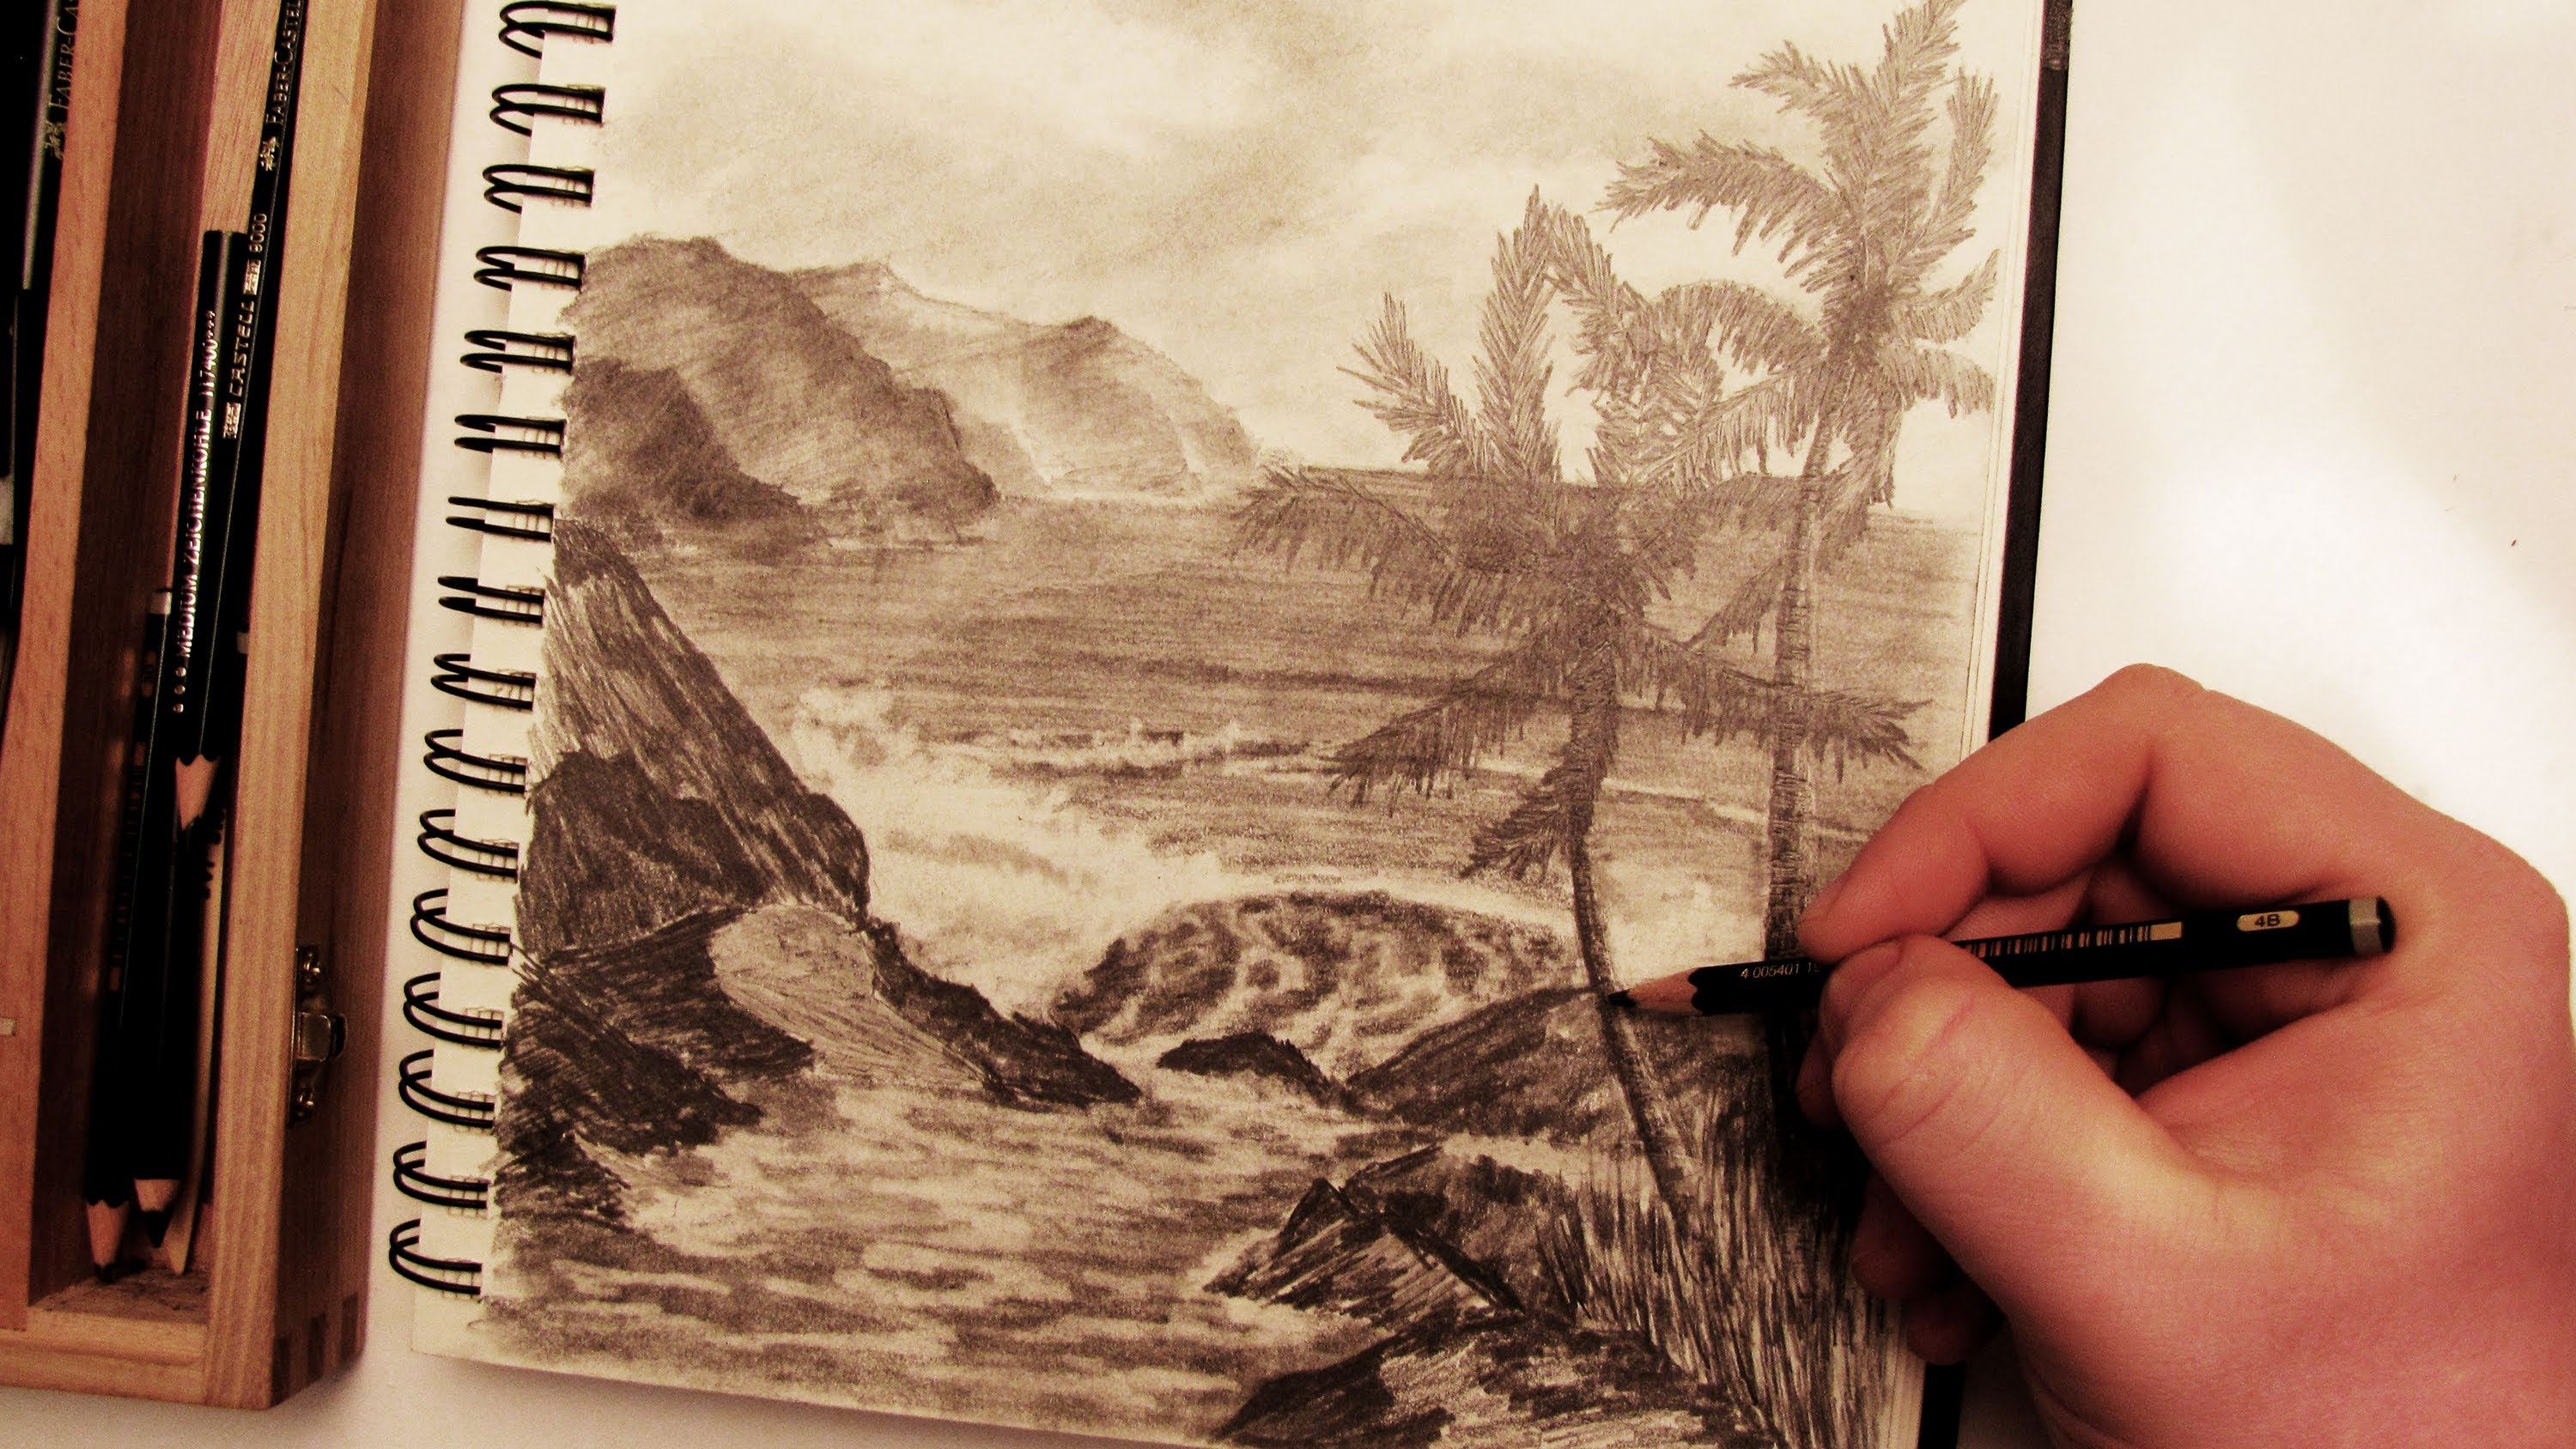 Drawn scenic drawing Palm Realistic  Pencil to